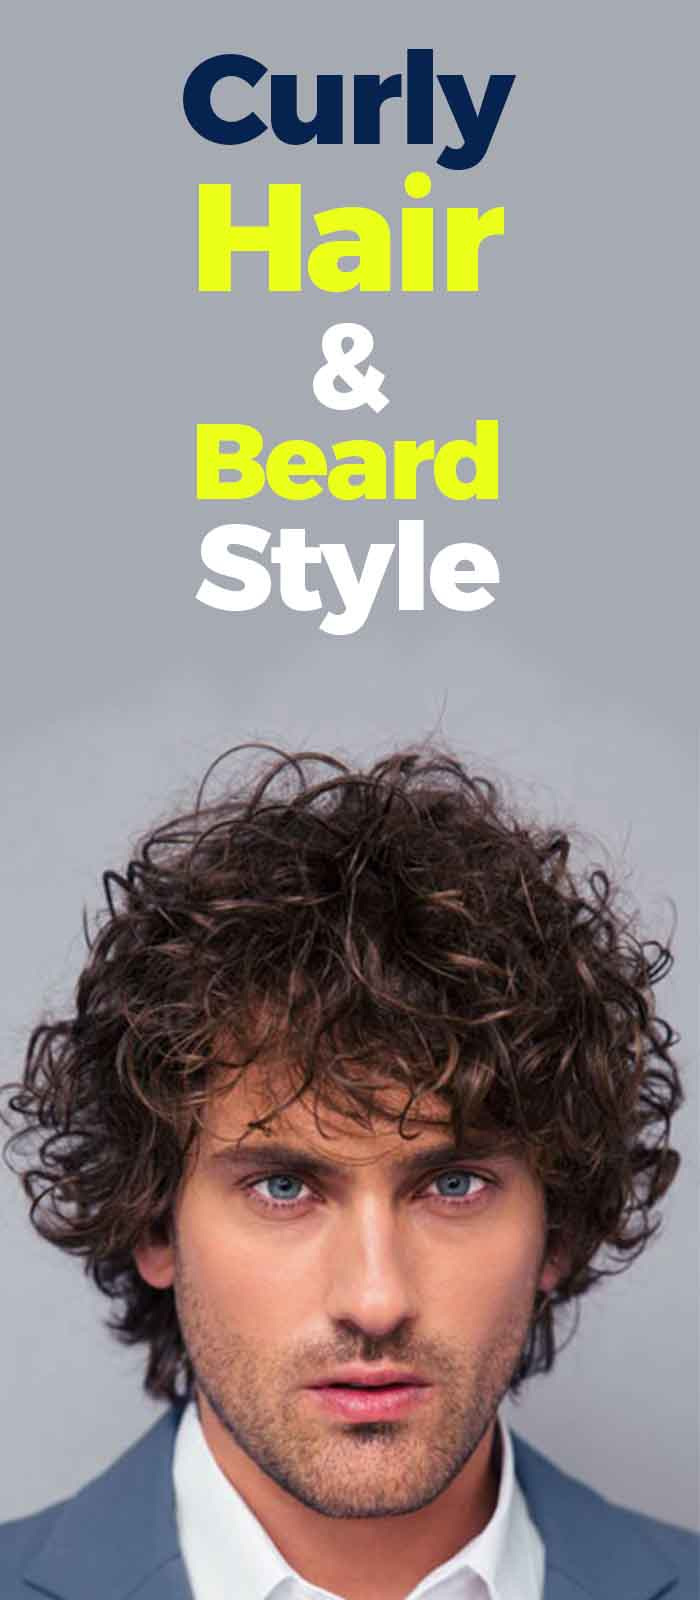 Best Curly Hairstyle With Beard ideas for men!